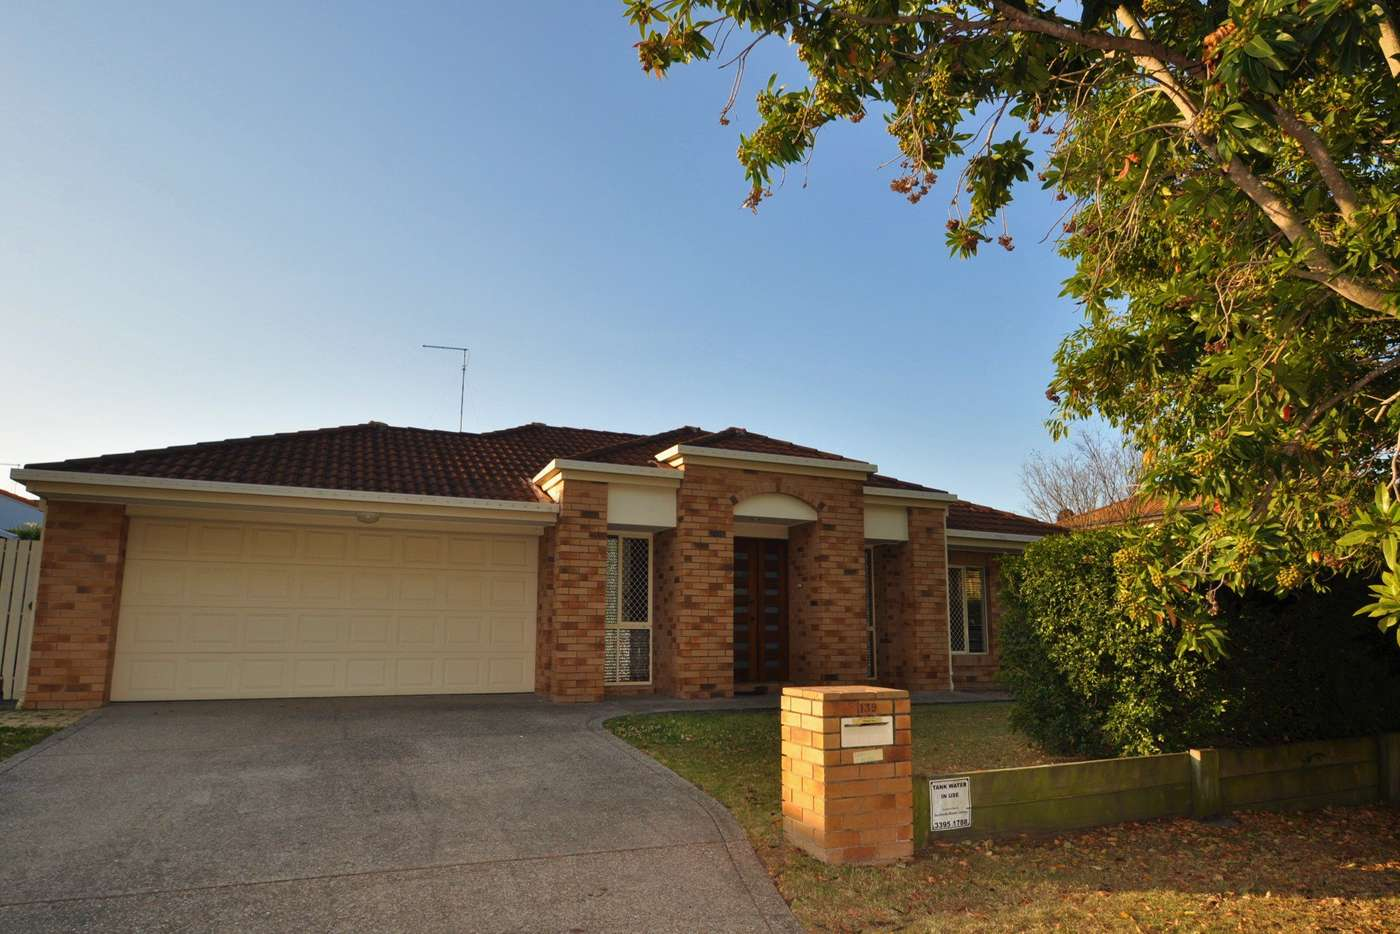 Main view of Homely house listing, 139 Petersen St, Wynnum QLD 4178